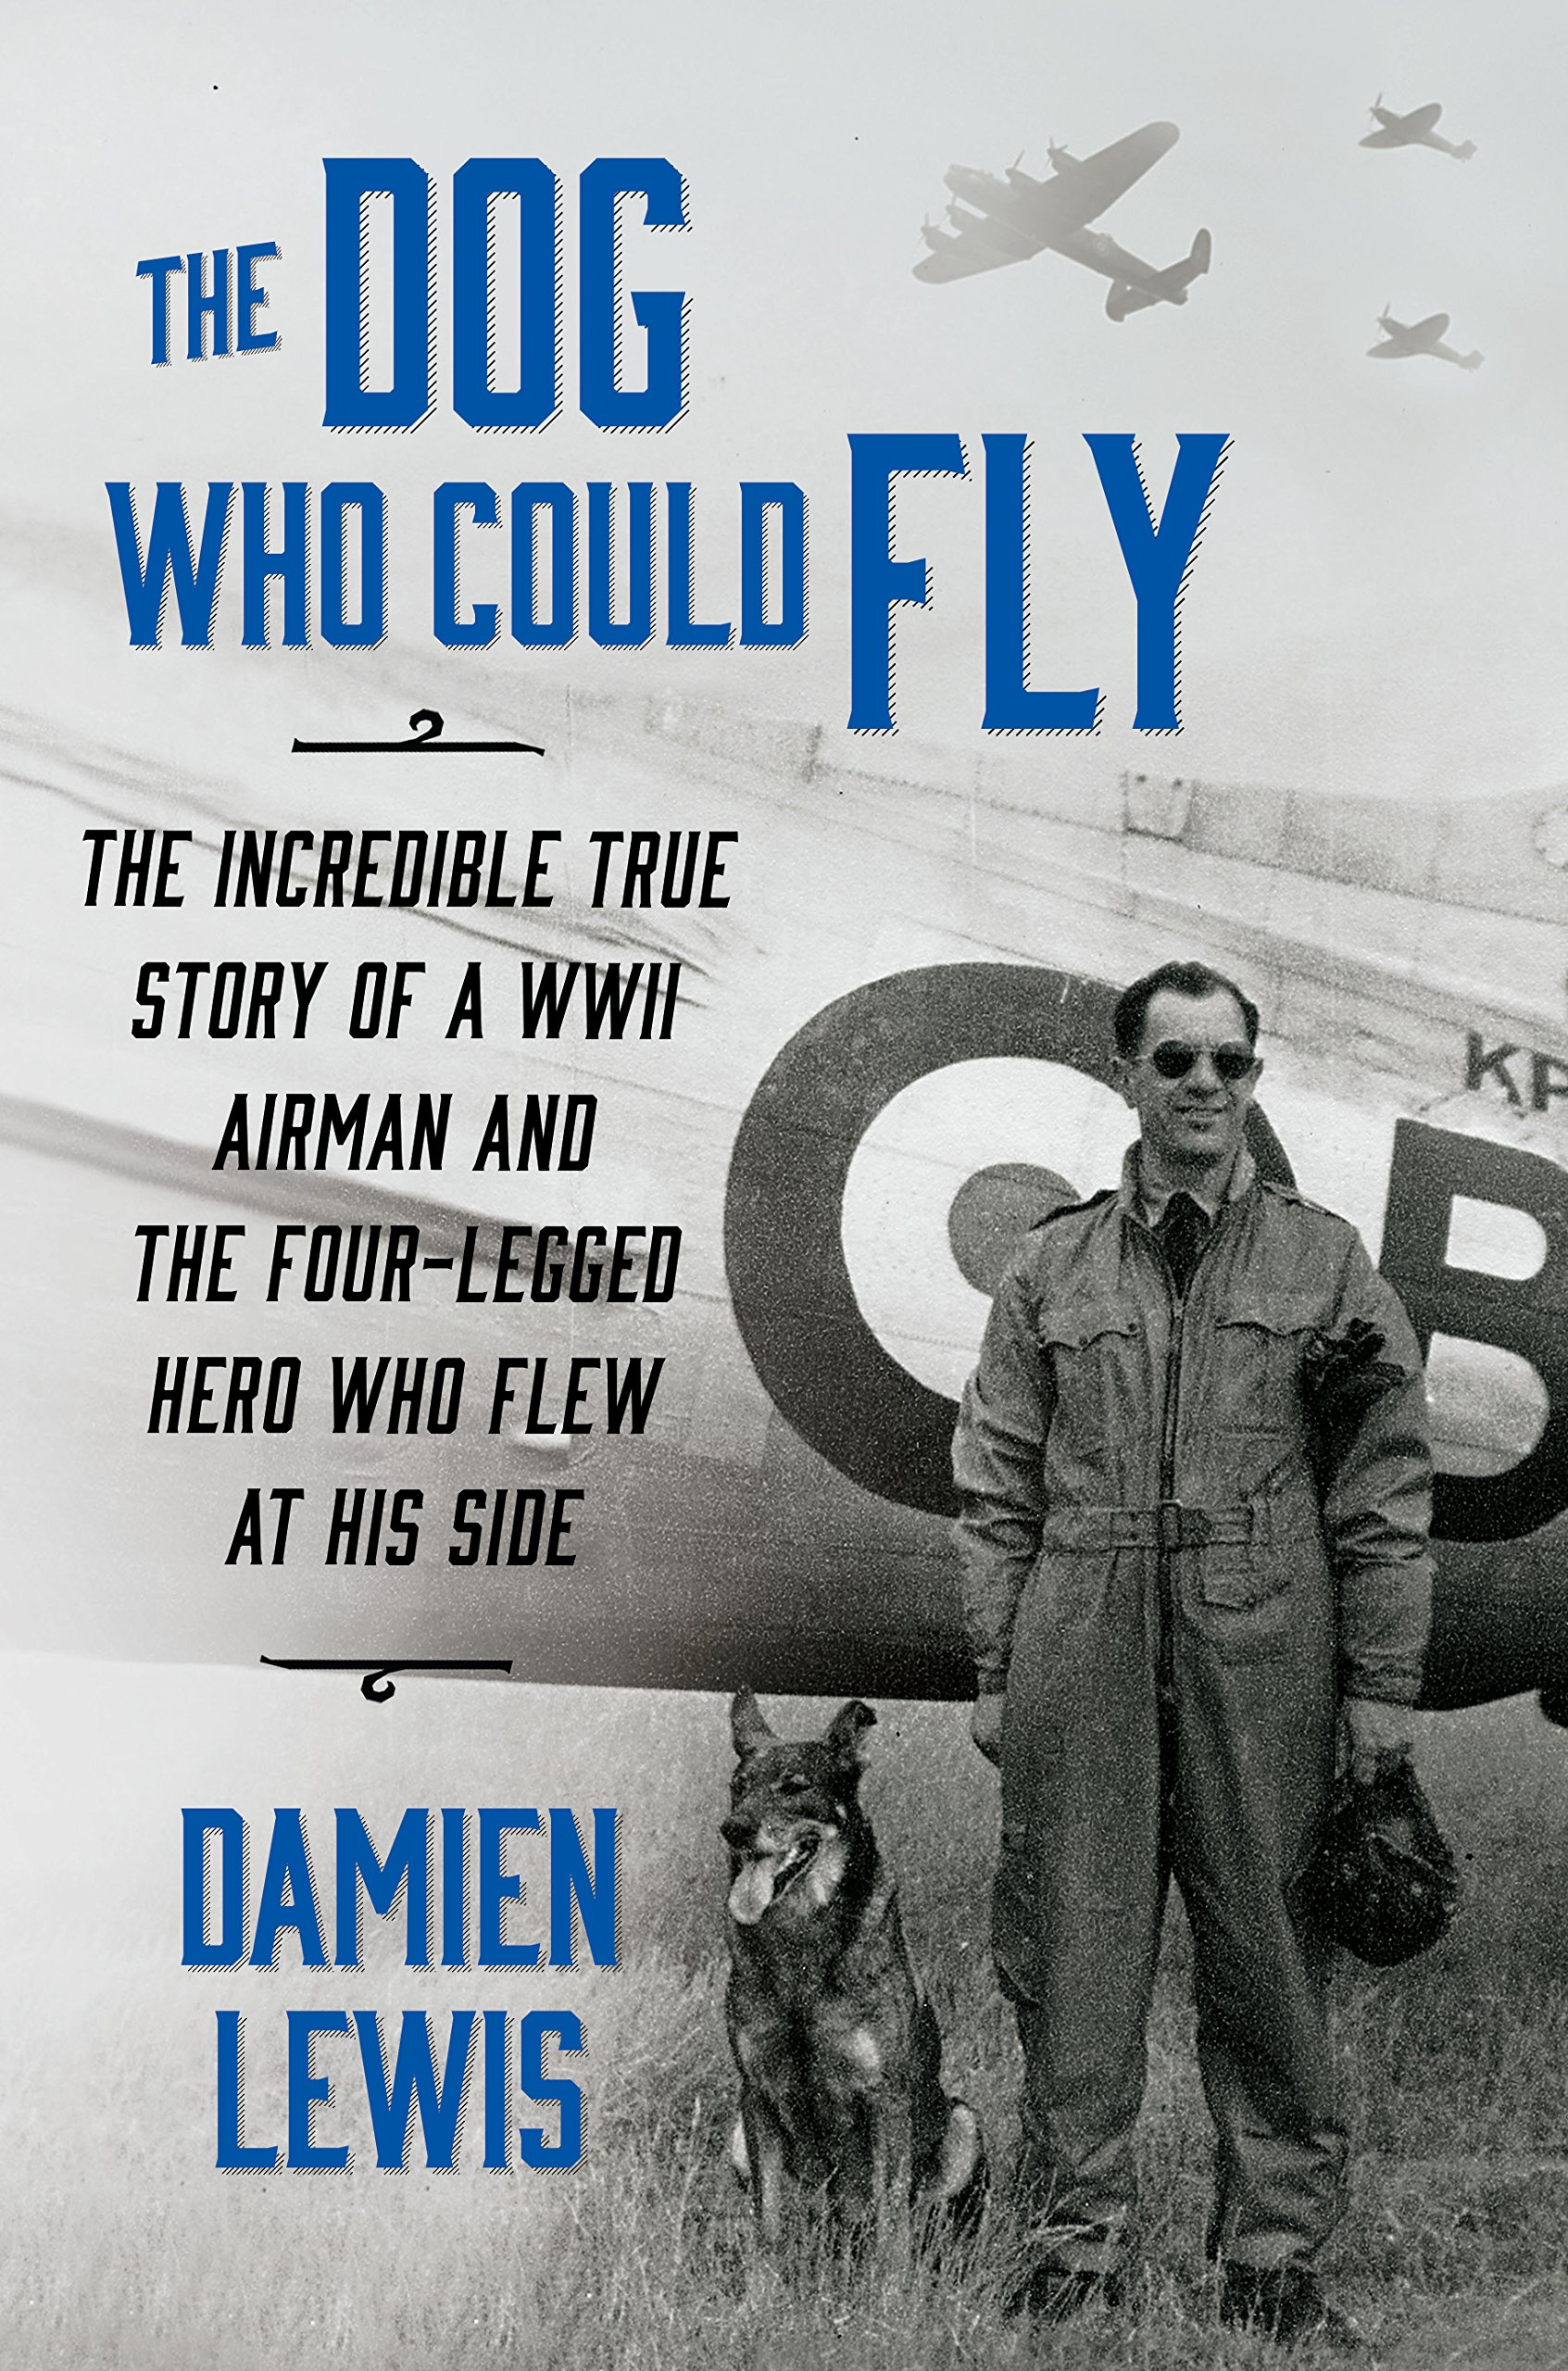 Read Online The Dog Who Could Fly: The Incredible True Story of a WWII Airman and the Four-Legged Hero Who Flew at His Side (Thorndike Press Large Print Nonfiction) pdf epub